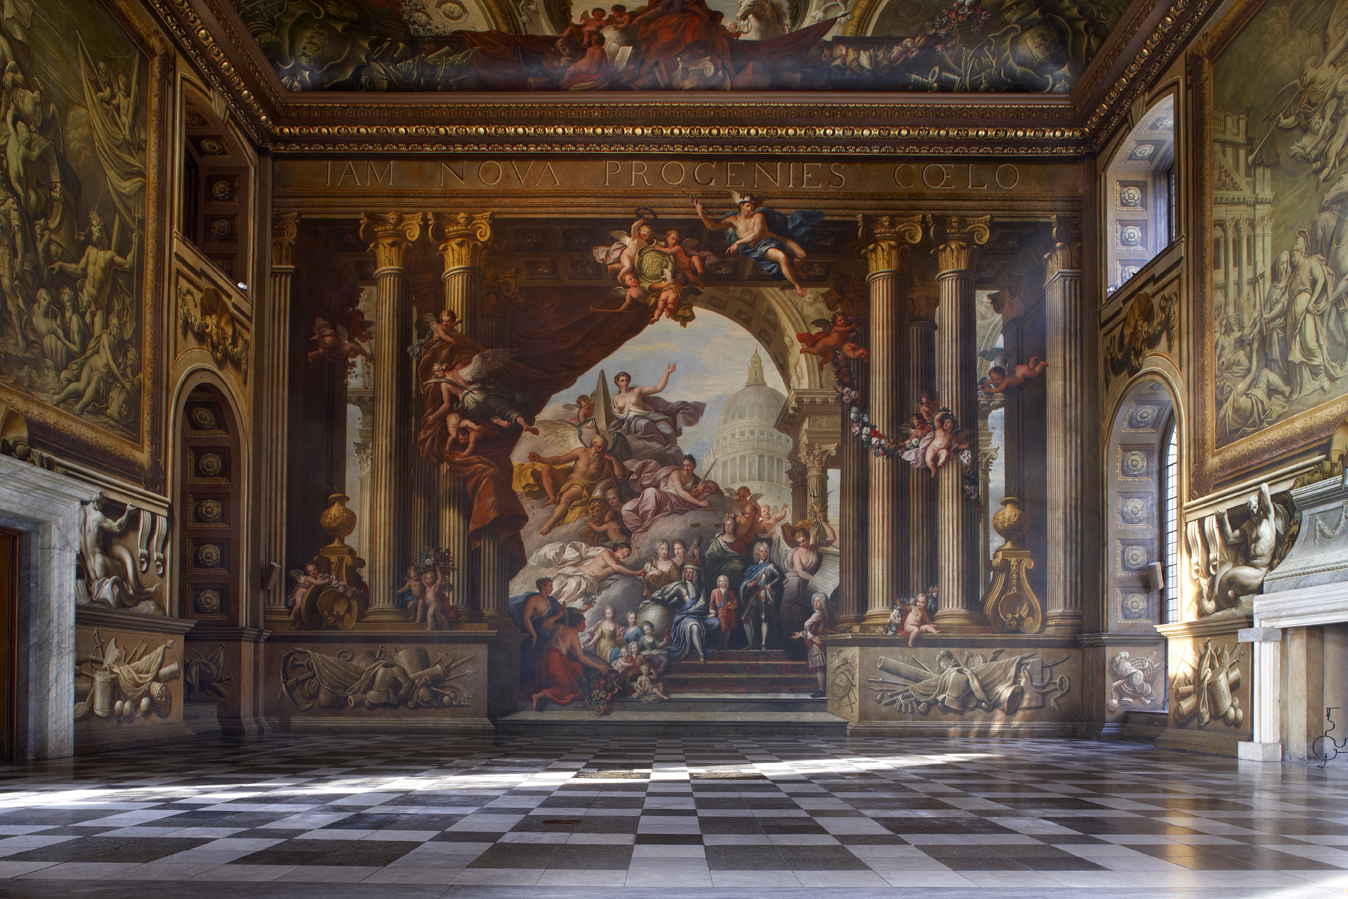 Painted Hall at the ORNC © ORNC and Jigsaw Design & Publishing, 2013 (4).jpg